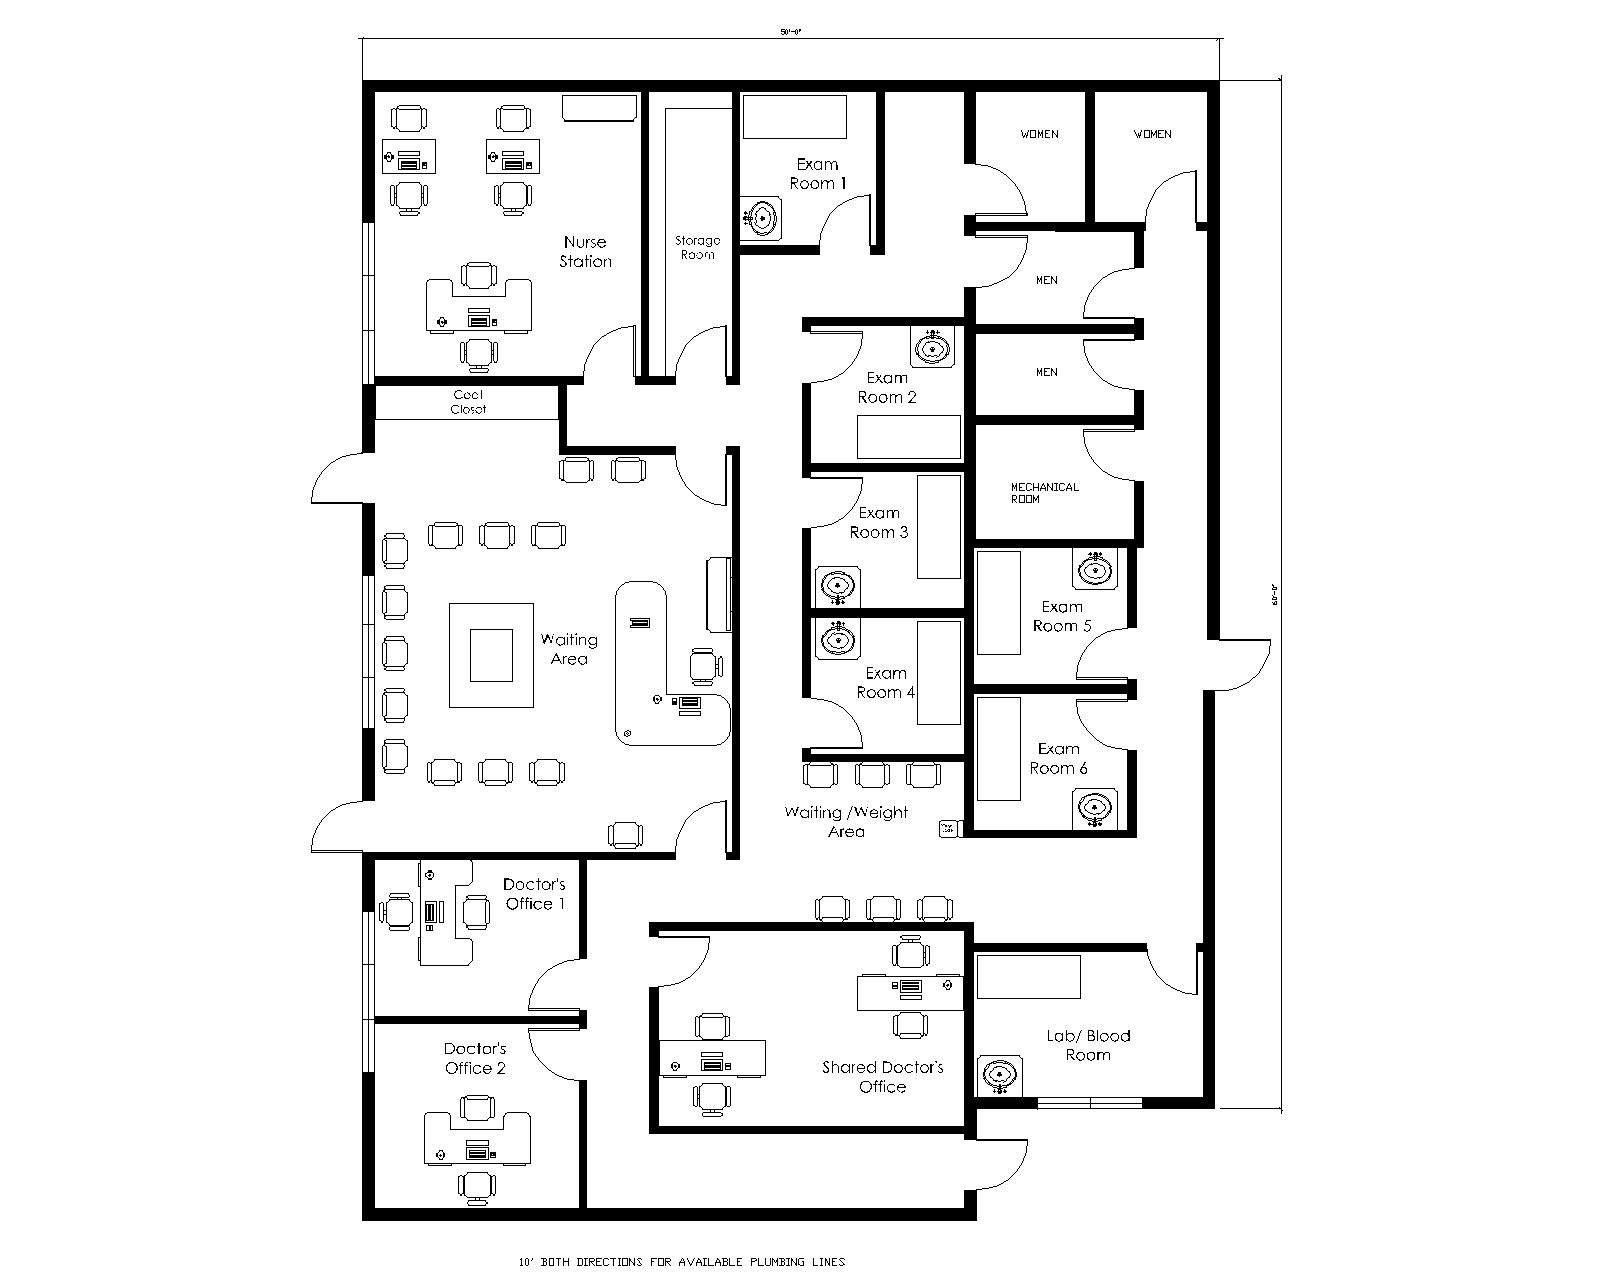 Medical Office Design Plans Doctors Office Layout Design